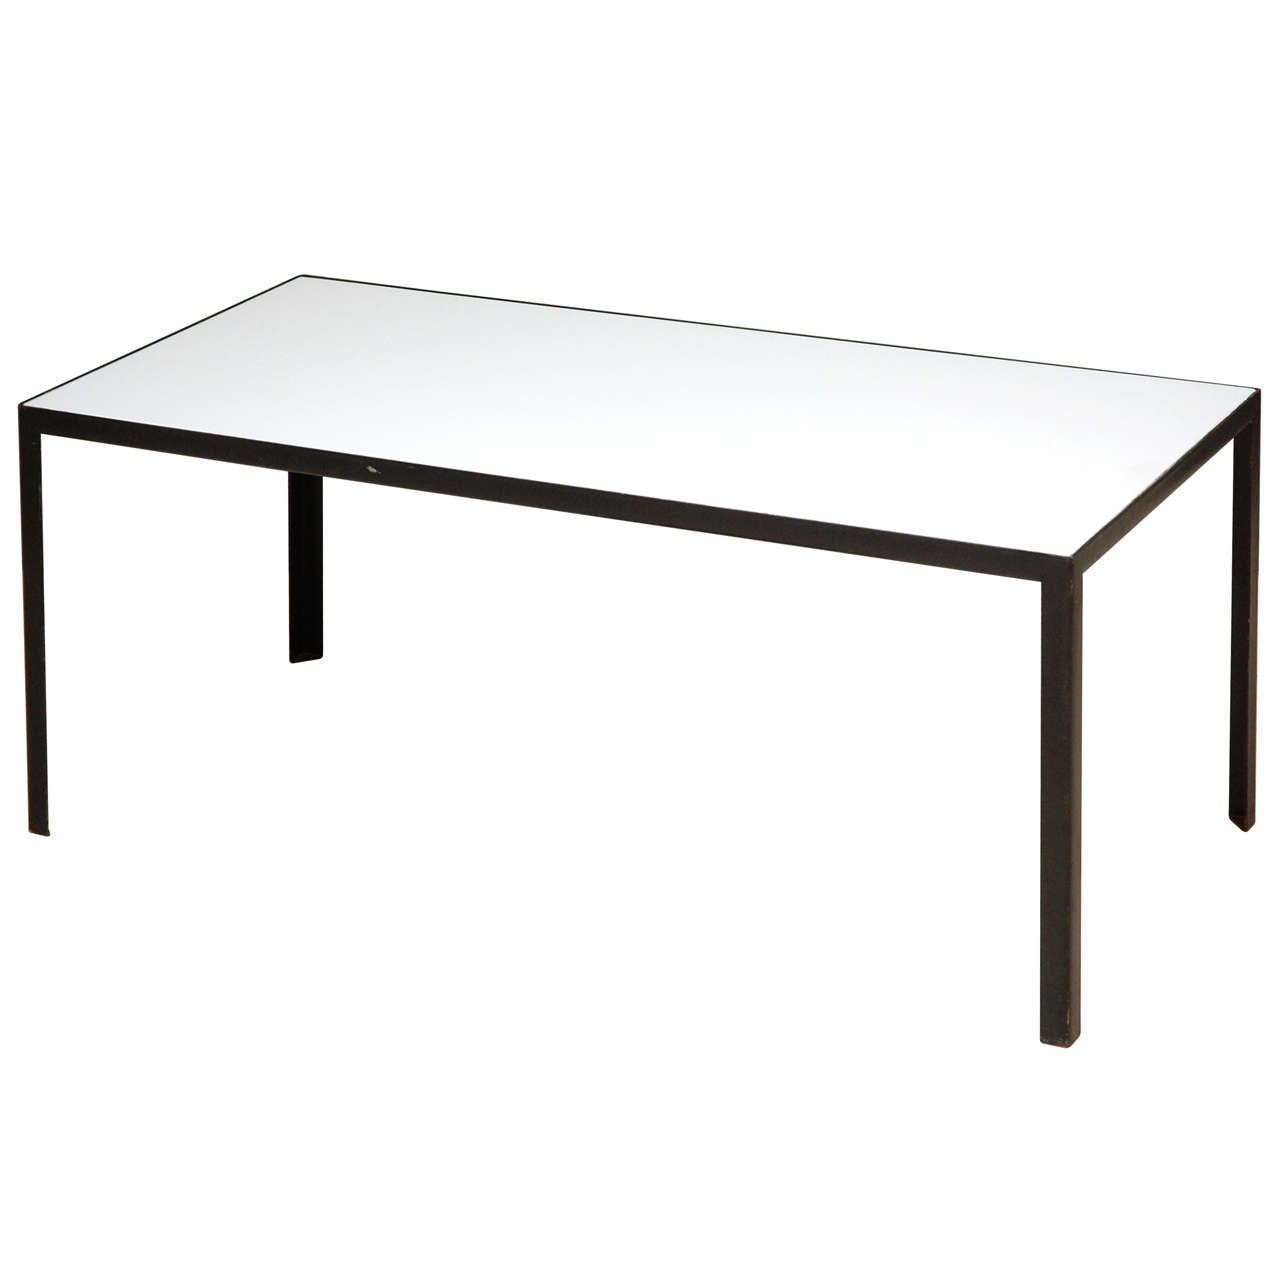 Pilastro Style Steel Framed Coffee Table With White Glass Top At 1stdibs